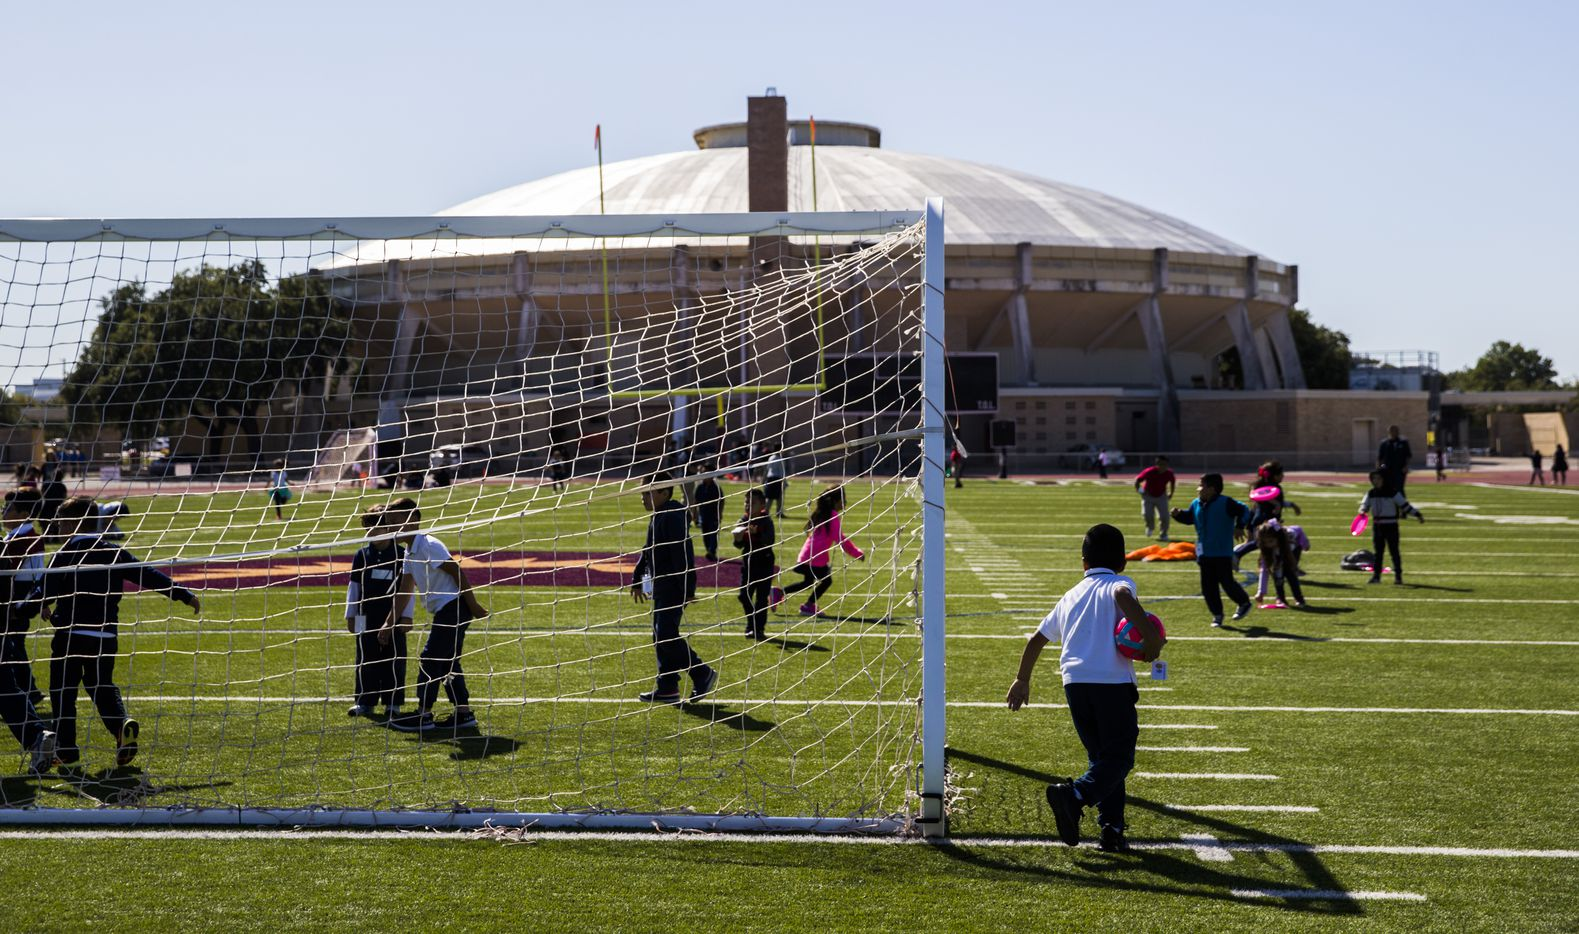 Burnet, Cigarroa and Pershing Elementary School students play on the track and football field outside Alfred J. Loos Athletic Complex, where they are temporarily holding classes, on Wednesday, October 23, 2019 in Dallas. The schools were damaged as multiple tornadoes ripped through the DFW area on Sunday night. (Ashley Landis/The Dallas Morning News)